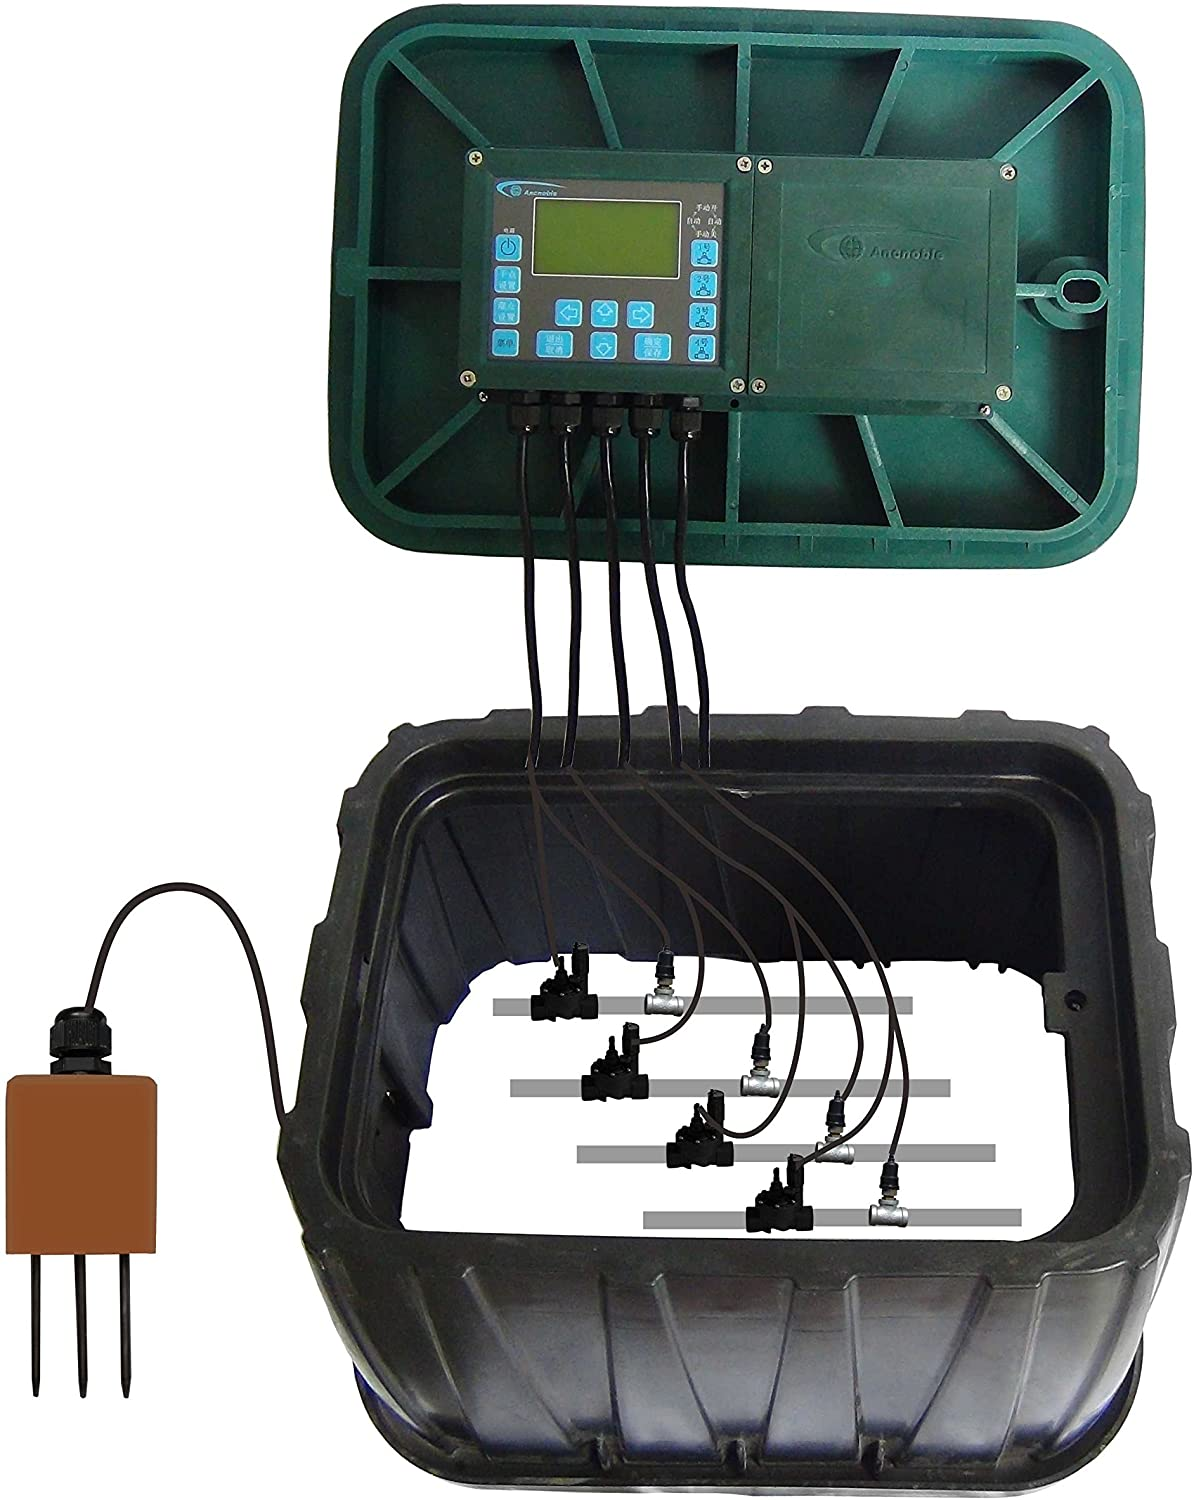 Ancnoble 4 Valves Wireless Field Controller/Relay Irrigation Control System